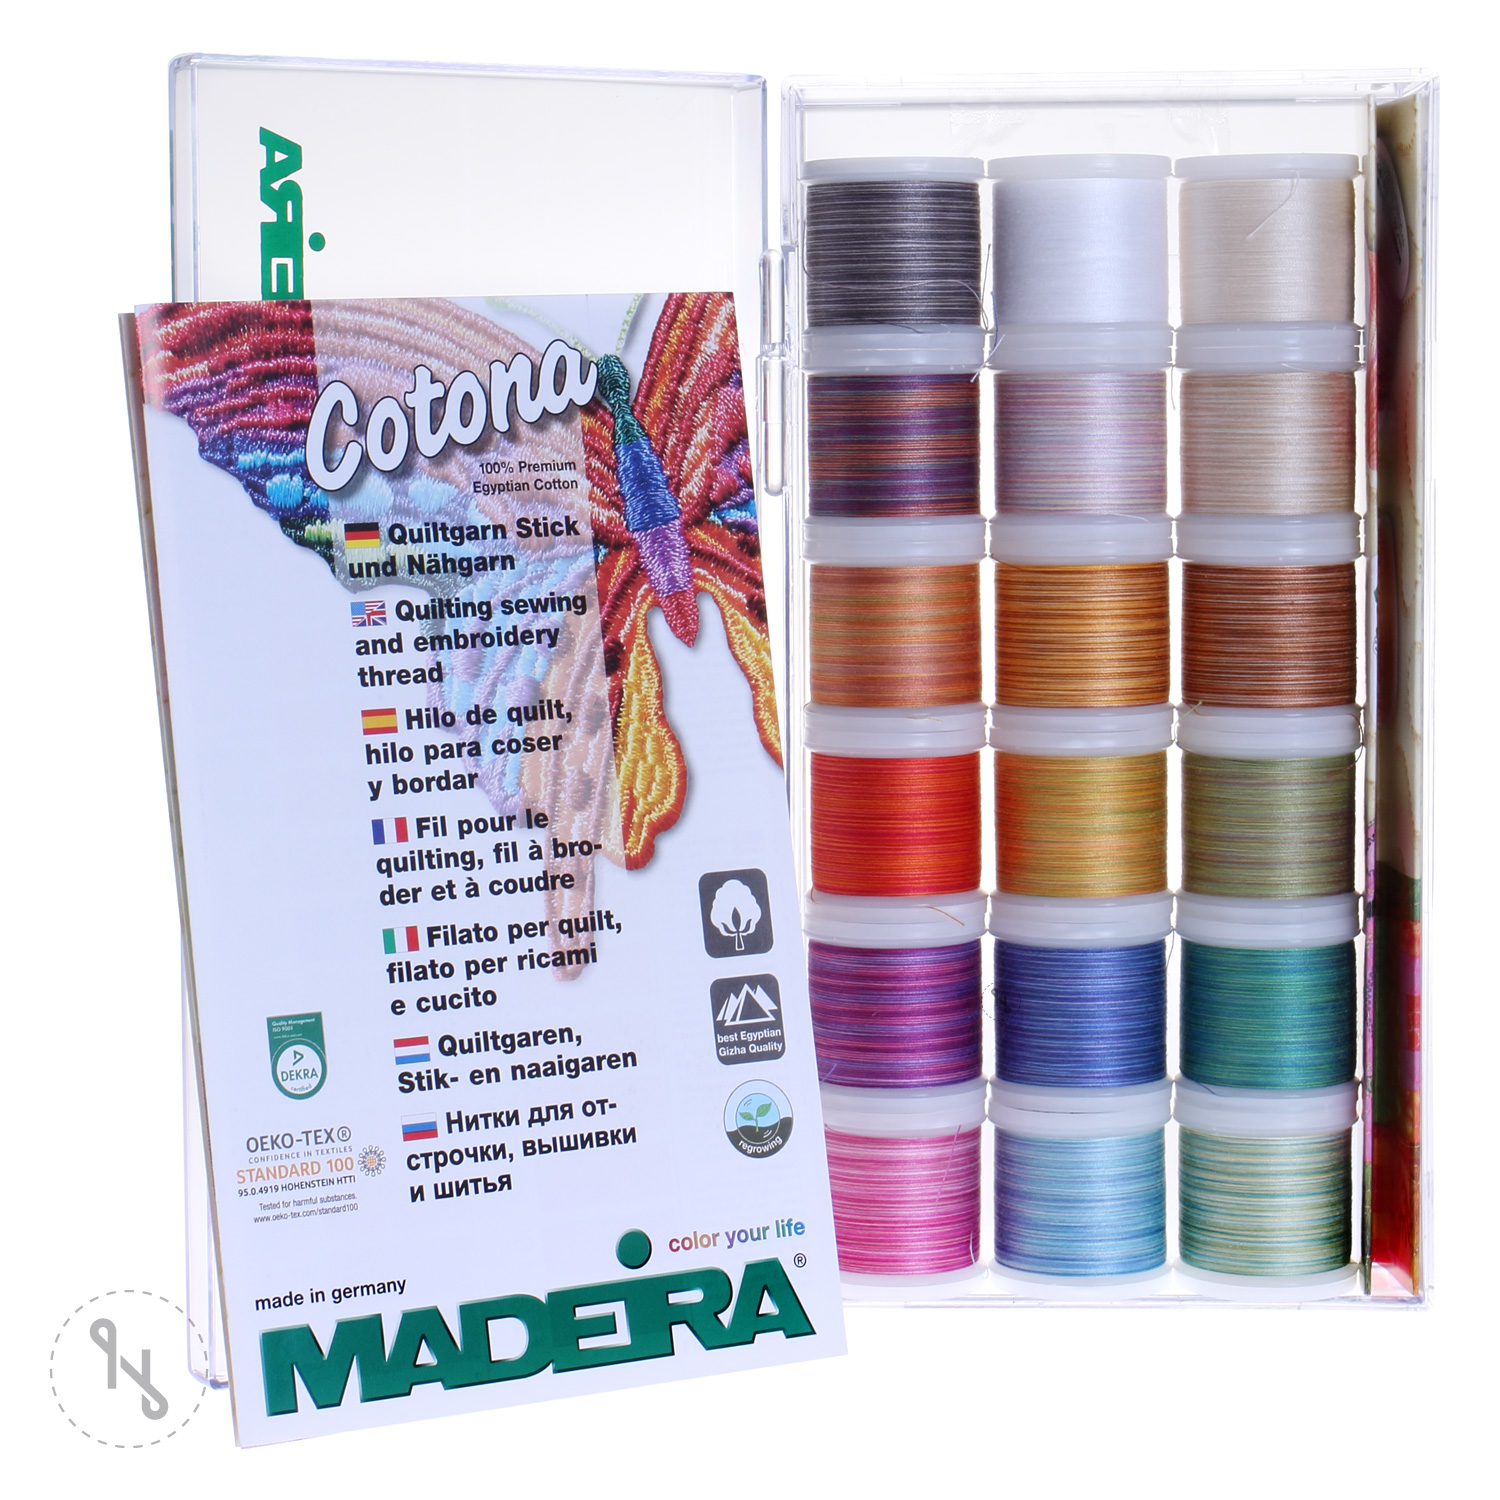 MADEIRA Stickbox Cotona mulitcolor No. 50 18 x 200m